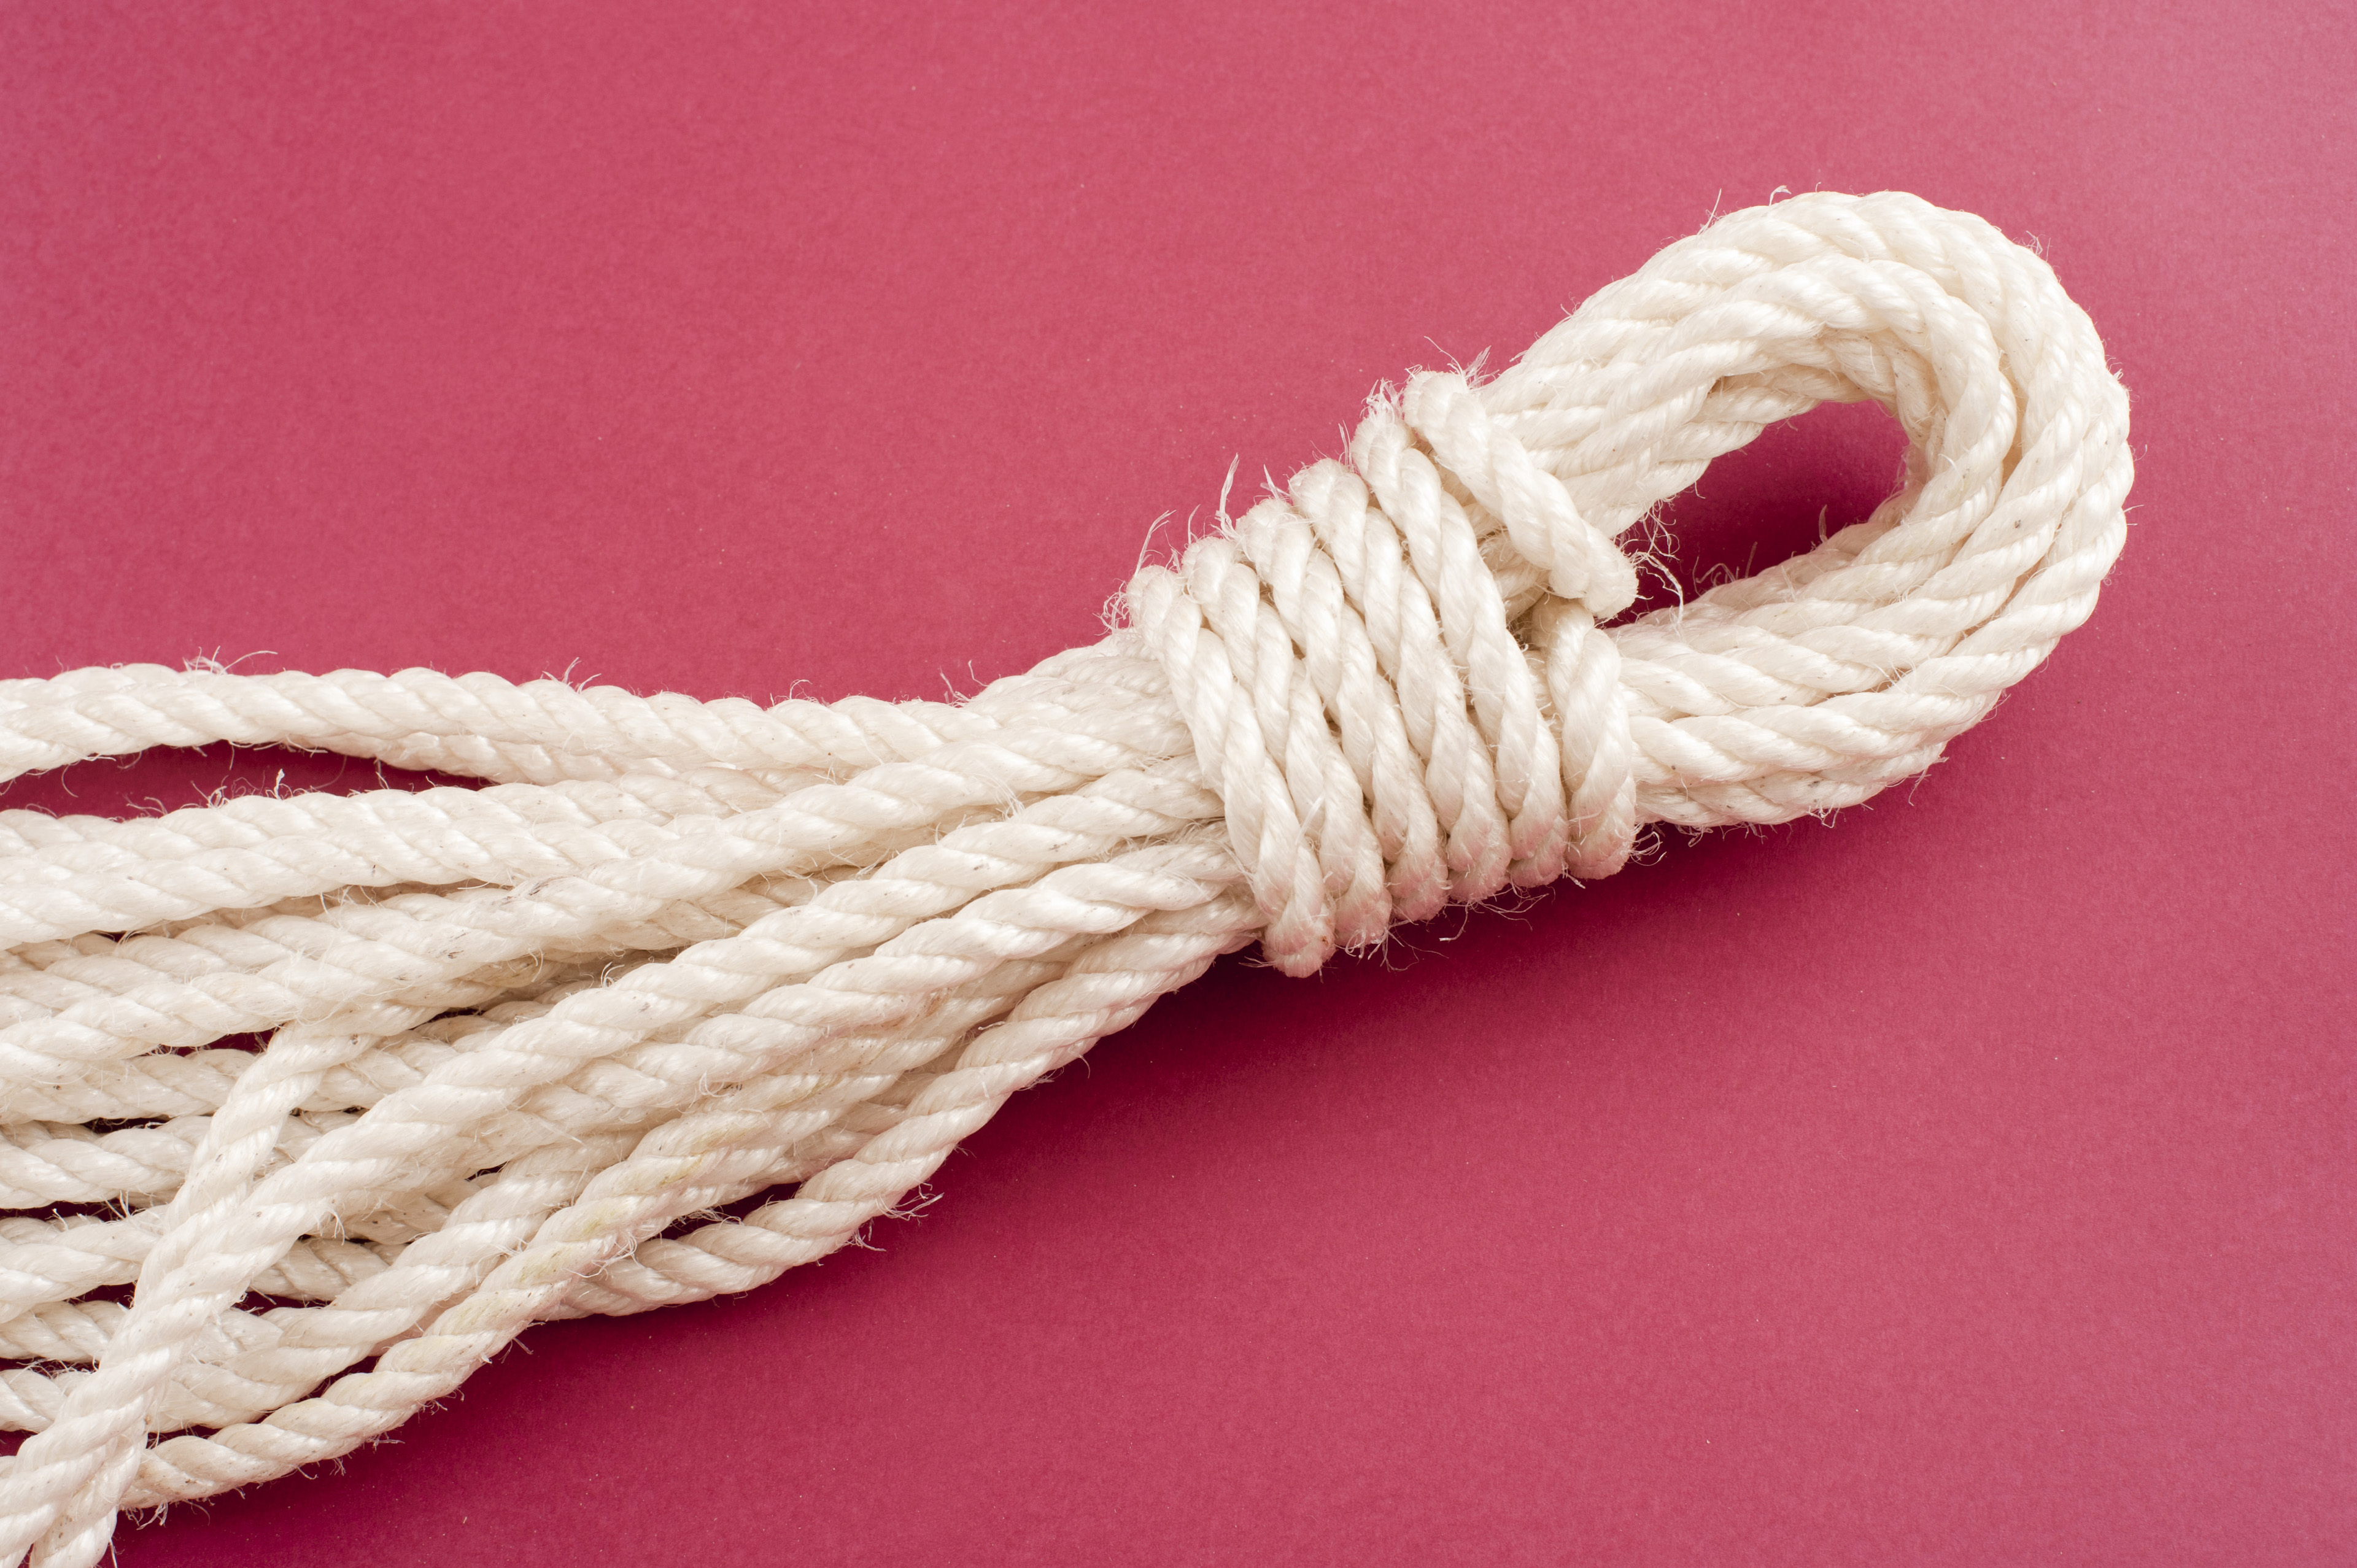 Neatly coiled and tied length of clean new white rope on a red background with copyspace